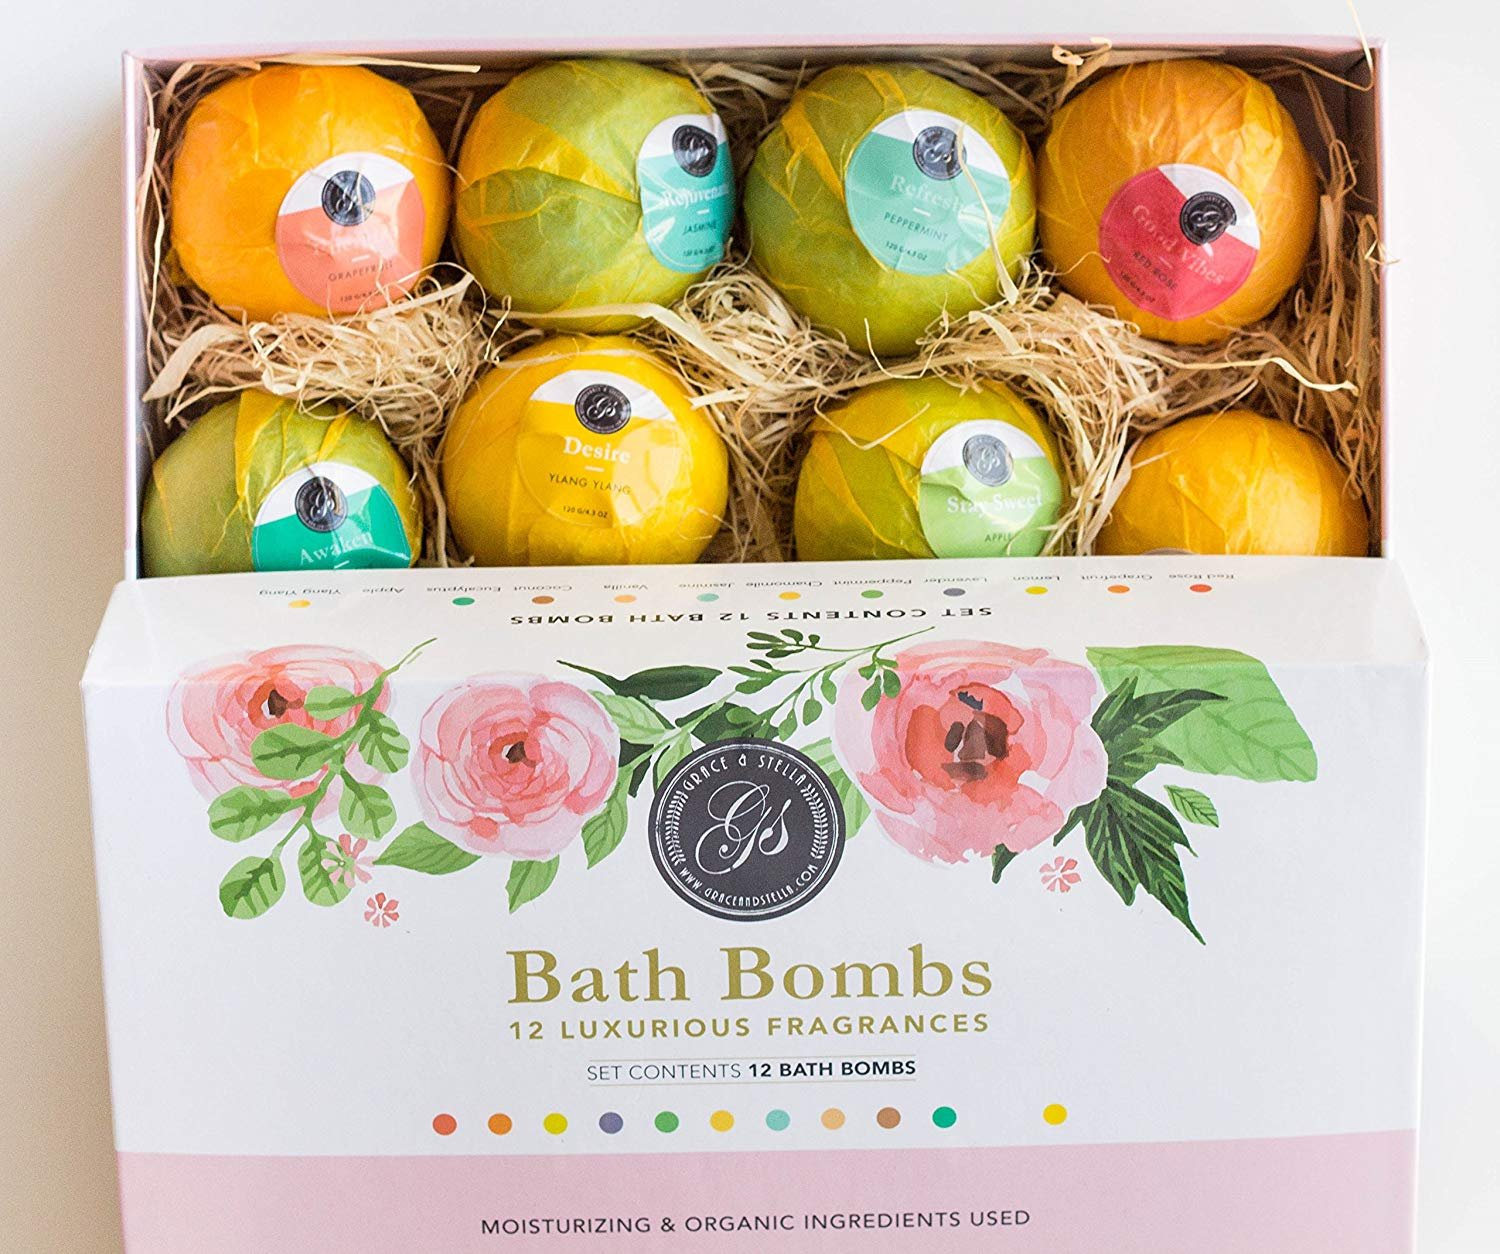 New Bath Bombs Variety Deluxe Set of 12 XL Assorted Fizzies - 120gram Each Individually Wrapped, All Different Scents - Natural Organic Vegan With Essential Oils. Perfect for Birthday, Anniversary, Bridal Shower (As Seen on Dragons Den) Grace & Stella Co.